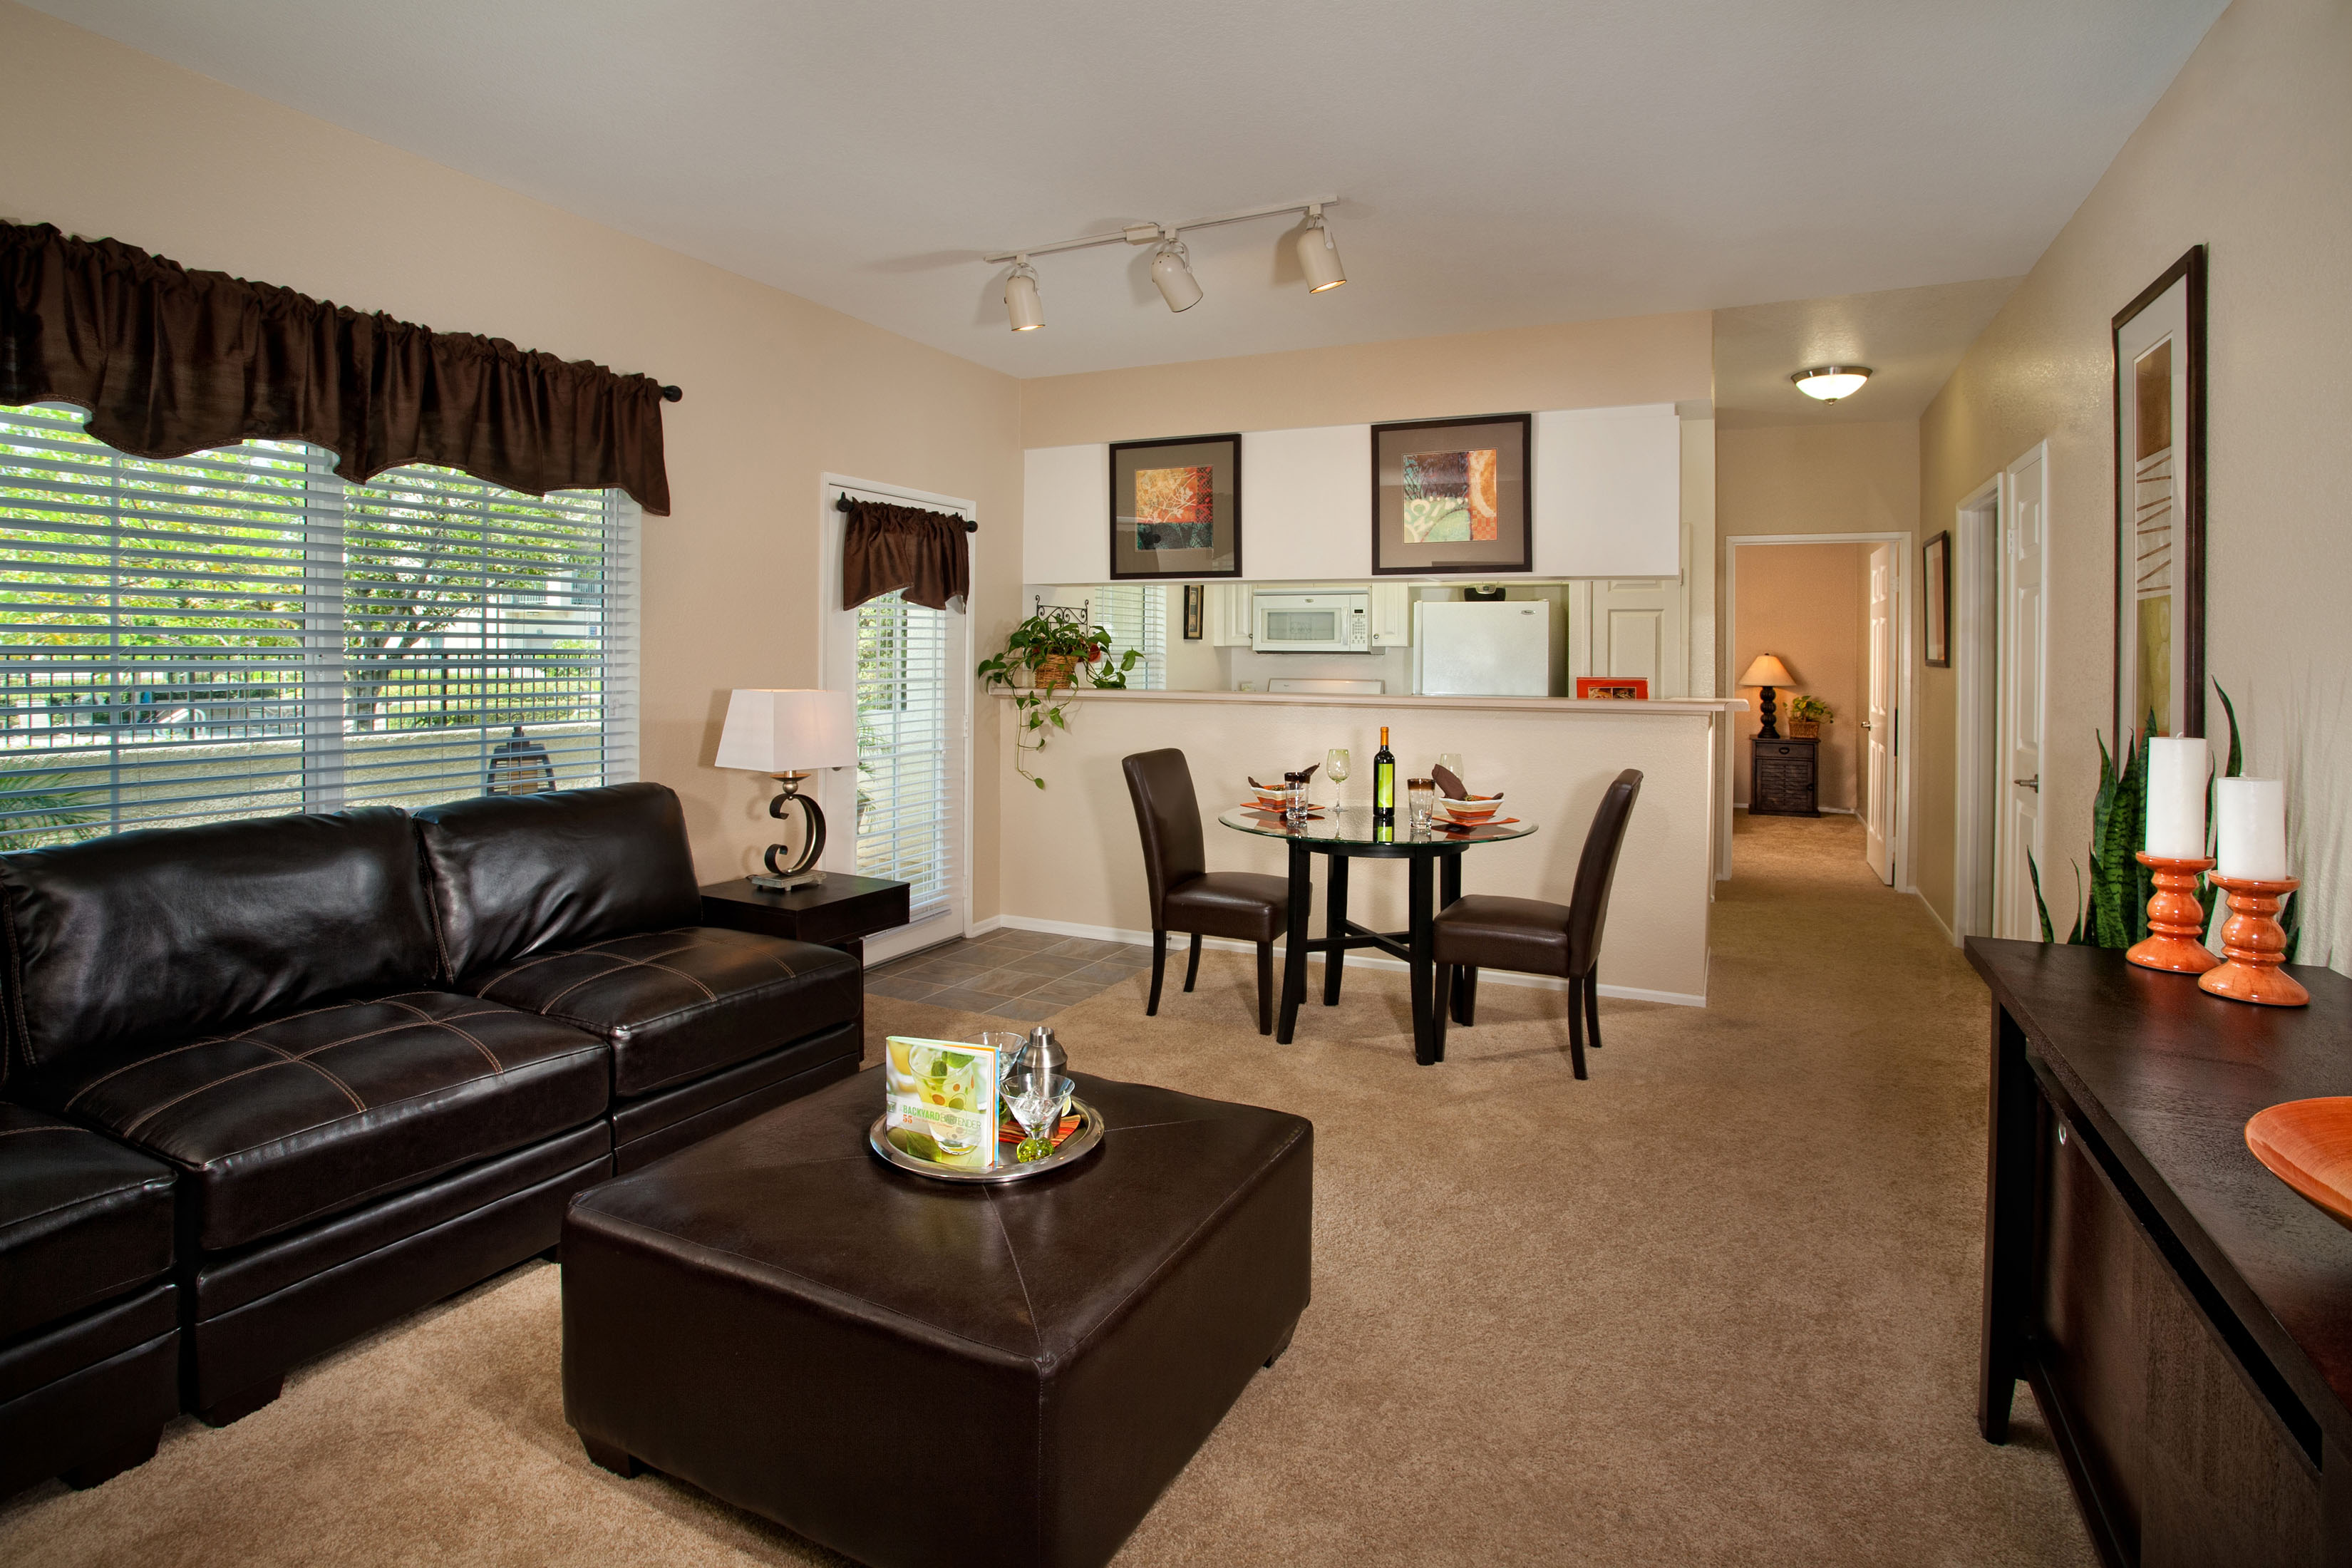 Del Mar Apartments | Apartment Homes For Rent In Rancho Cucamonga